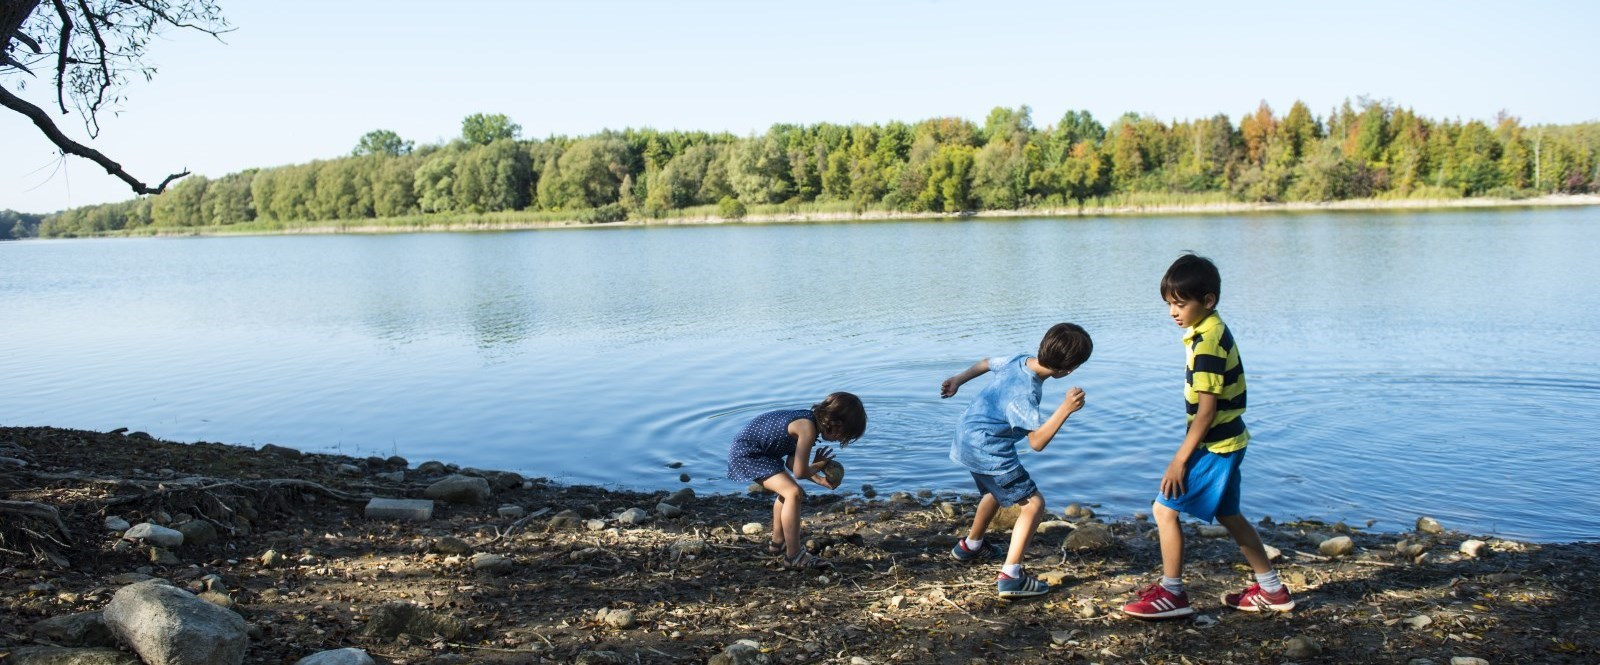 three kids skipping rocks on a lake